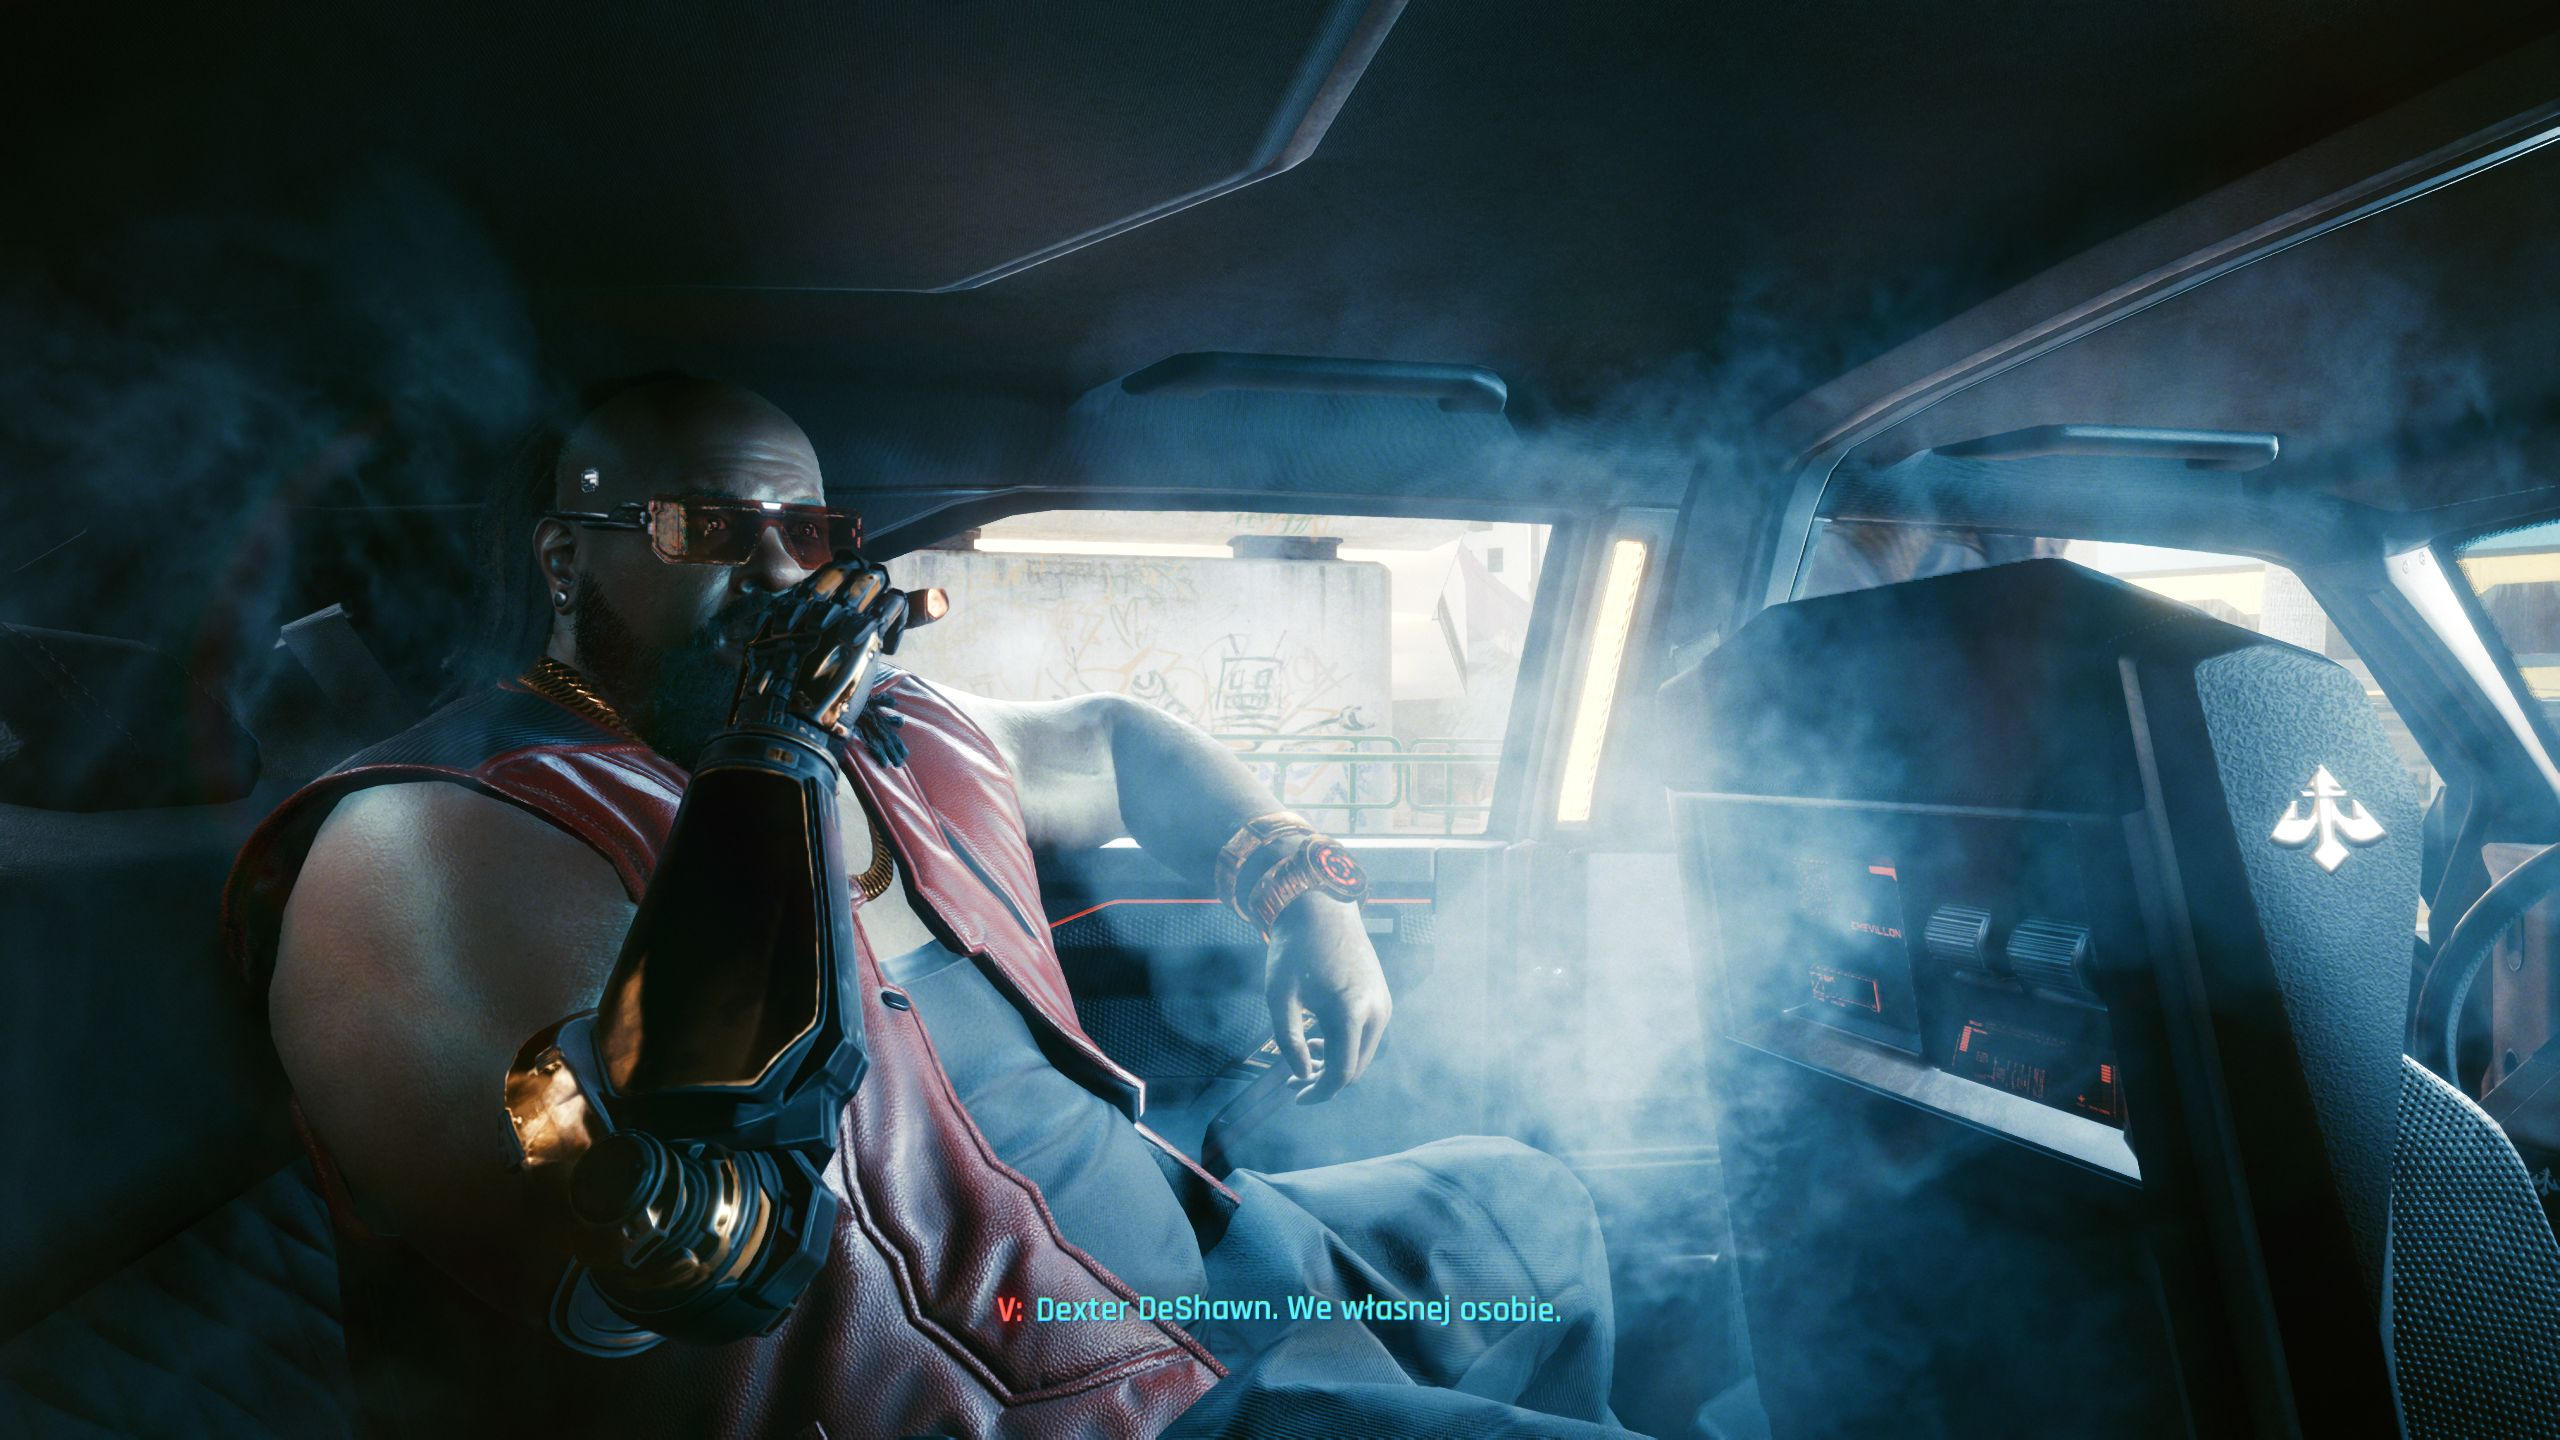 Cyberpunk_2077_C_2020_by_CD_Projekt_RED_13.12.2020_00_35_24_P